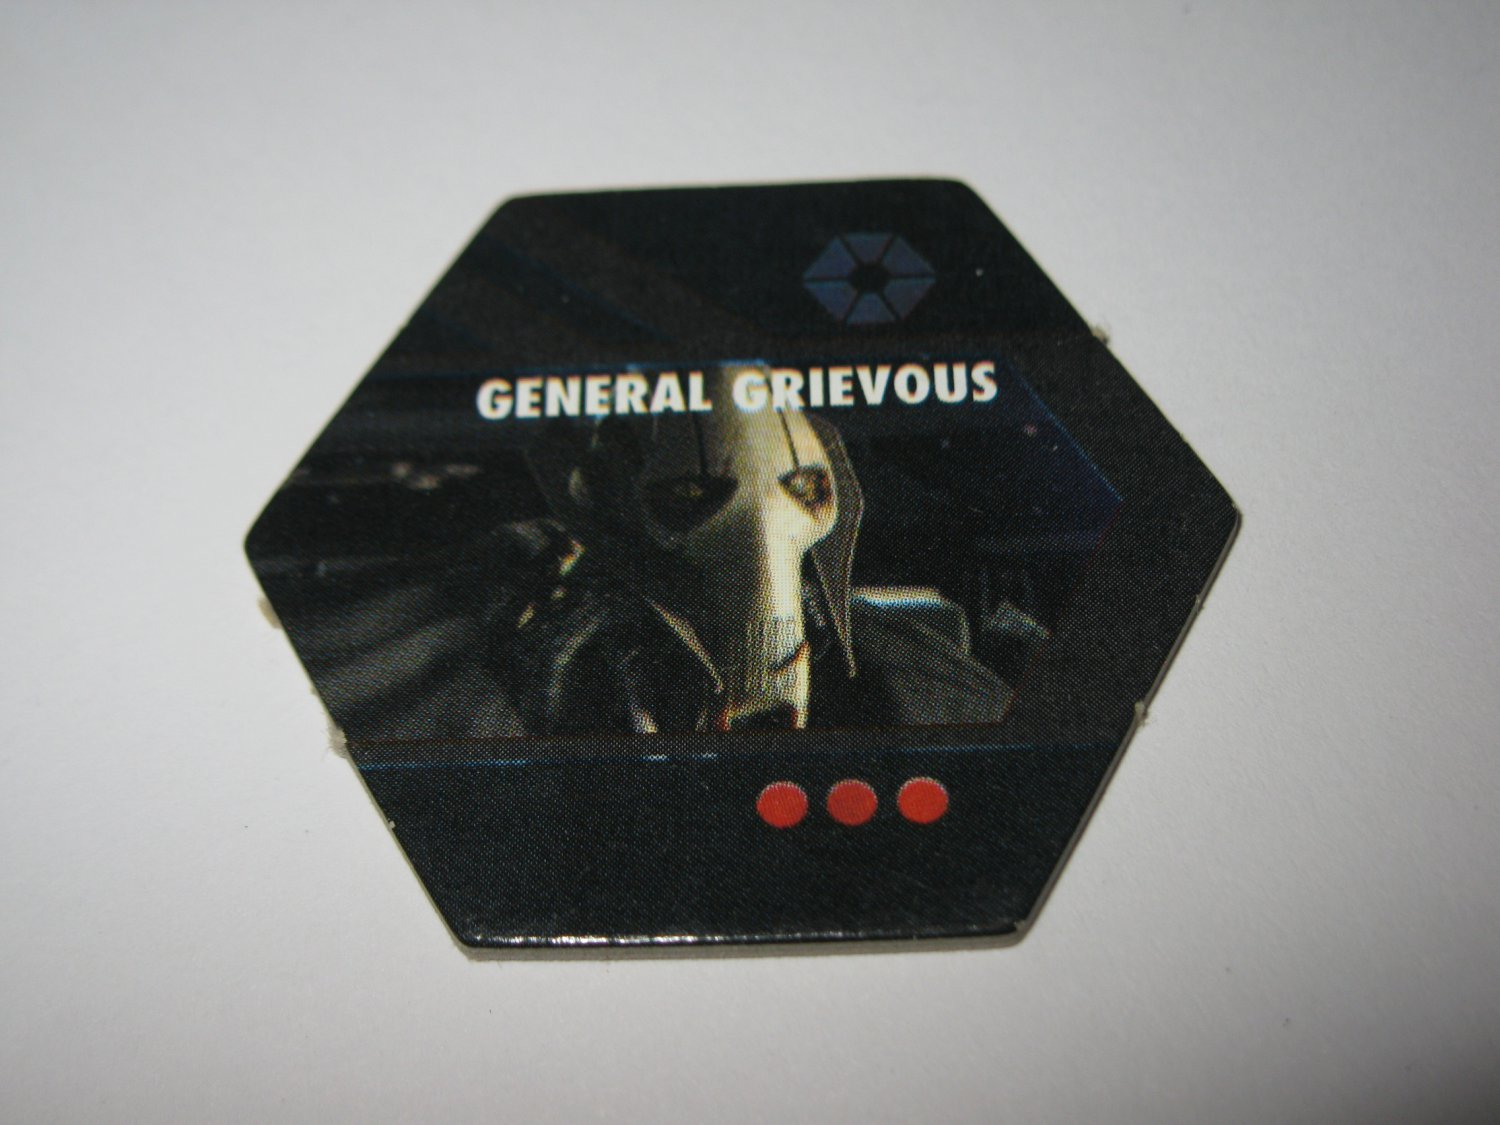 2005 Risk: Star Wars The Clone Wars Board Game Piece: single General Grievous Player Hexagon